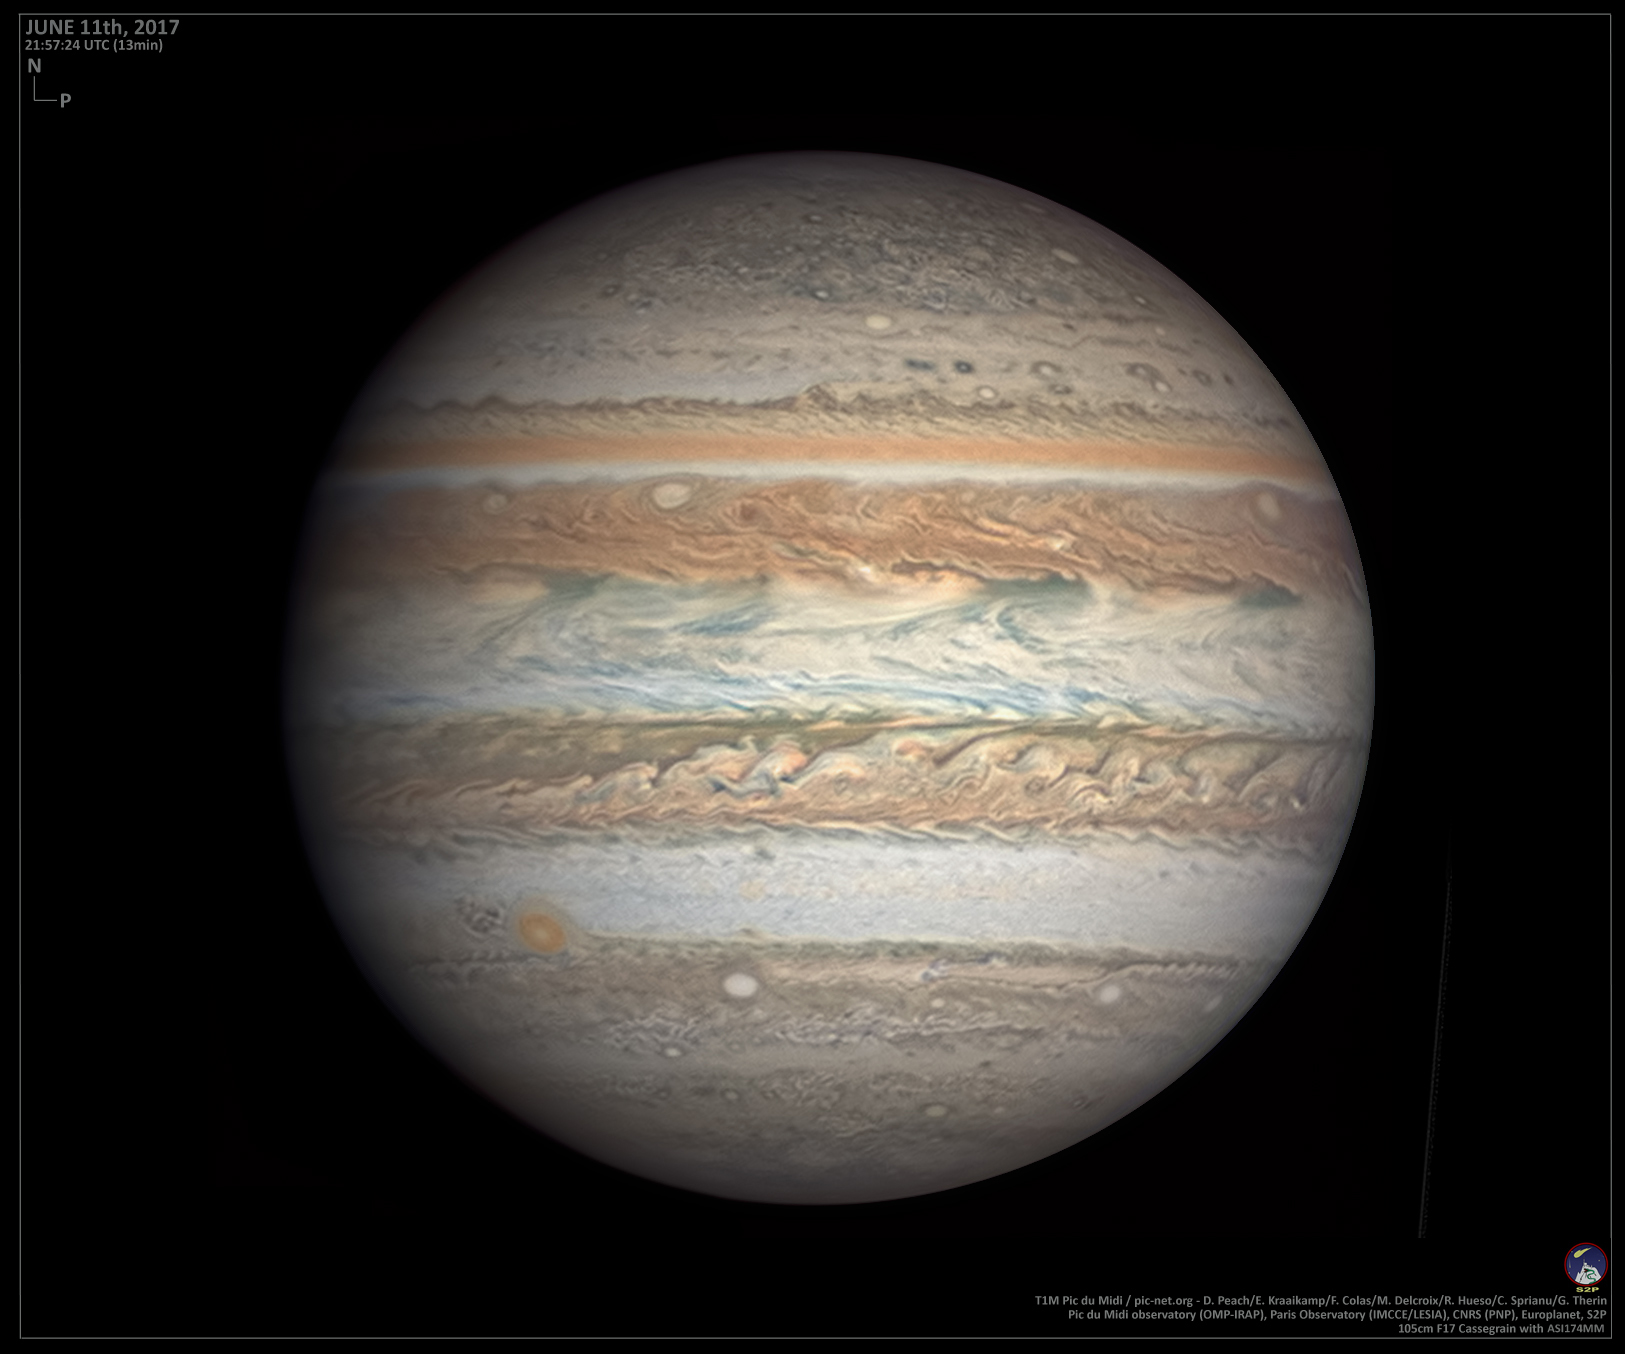 Extremely high quality image of Jupiter by Damian Peach et al., June 11, 2017